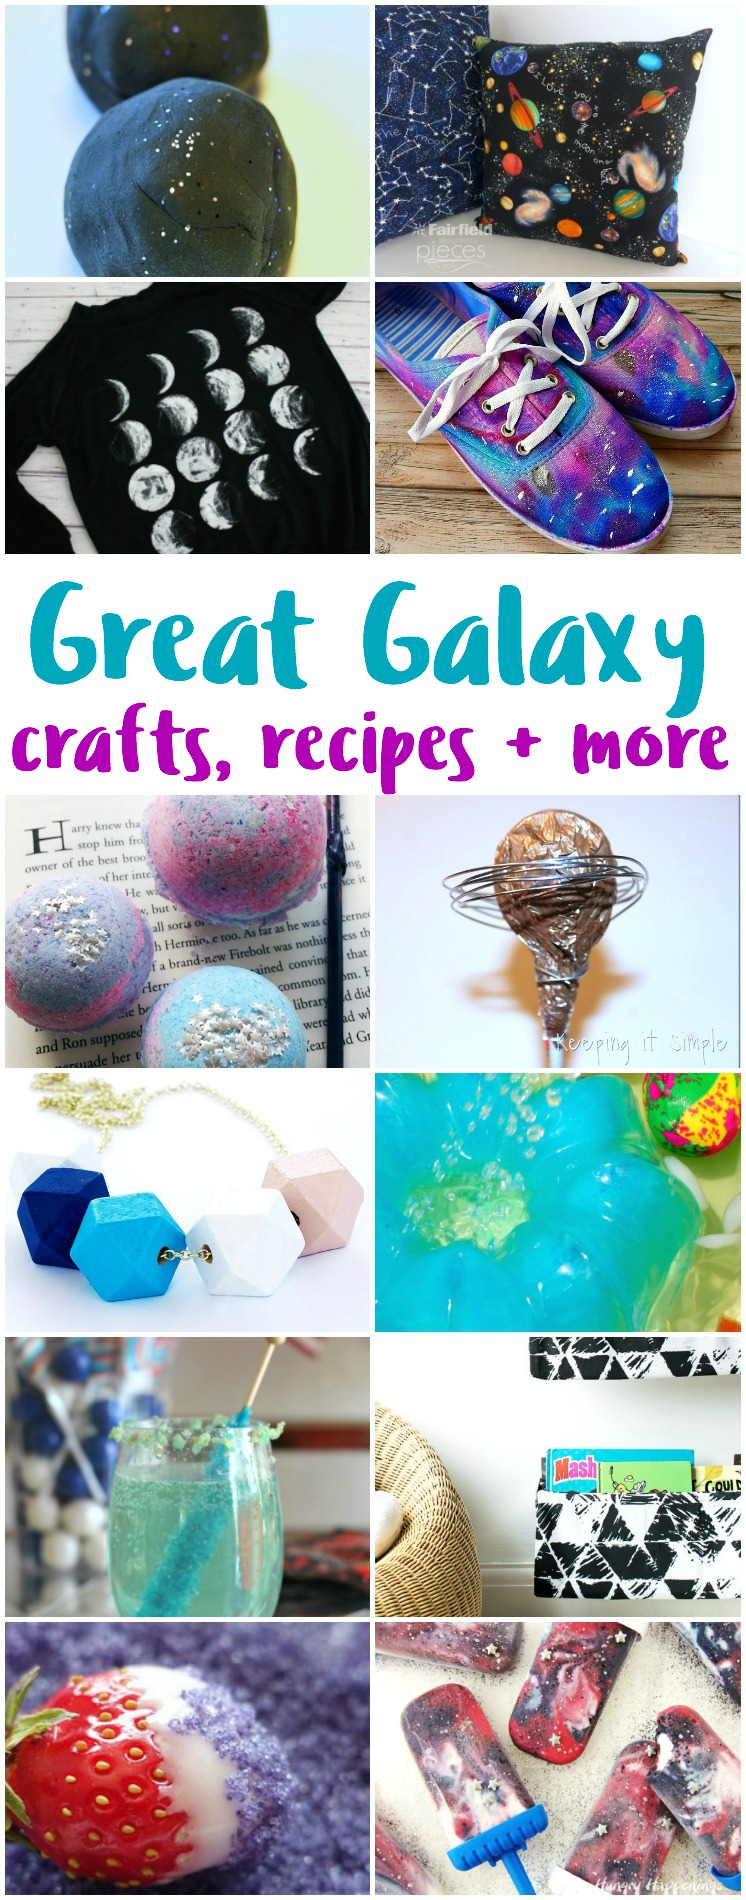 galaxy crafts recipes and other DIY space projects and tutorials